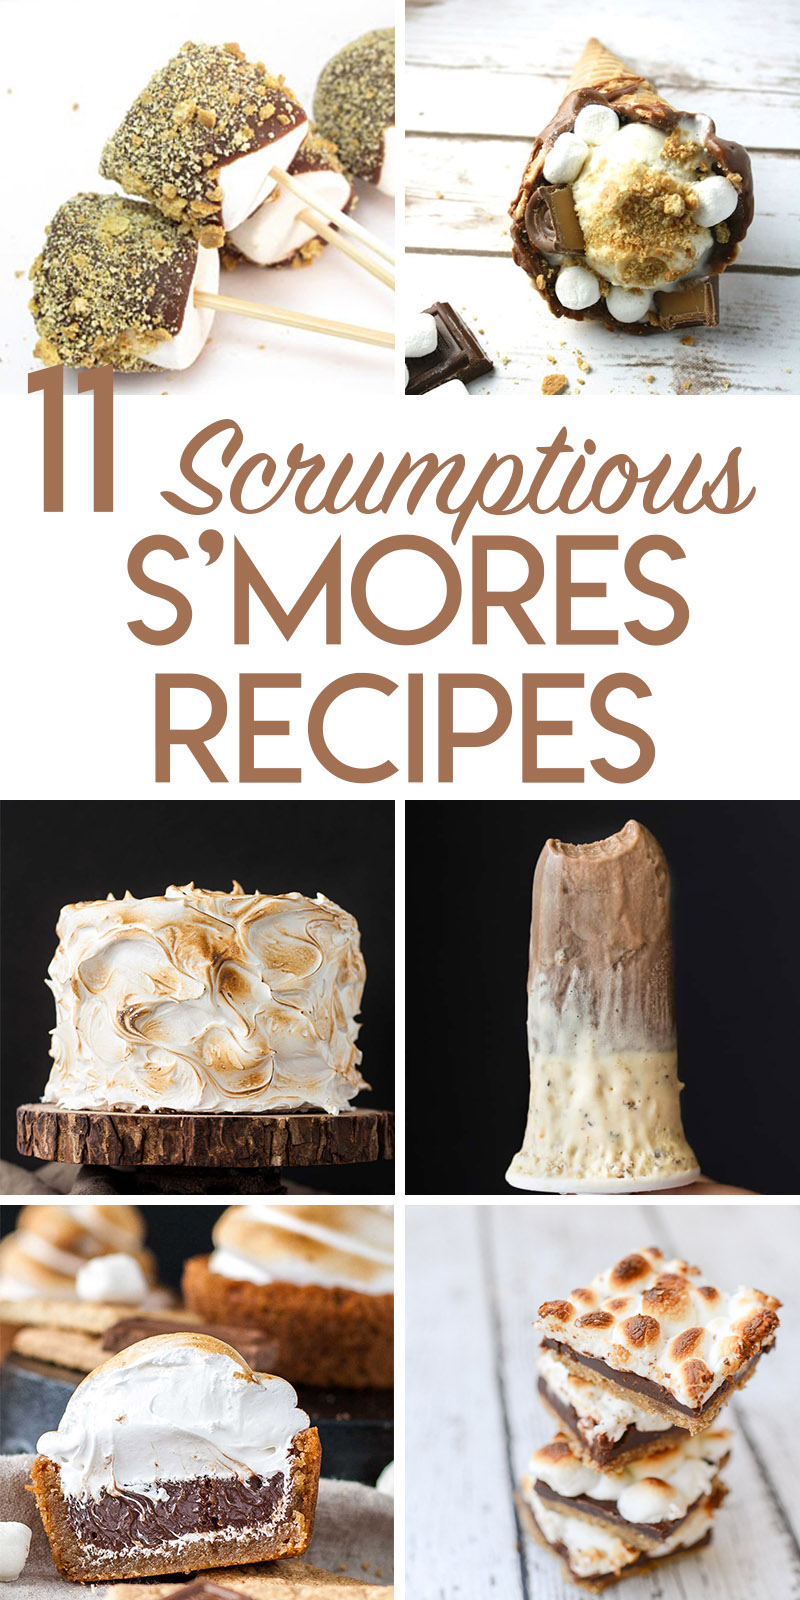 11 amazing S'mores Recipes collage